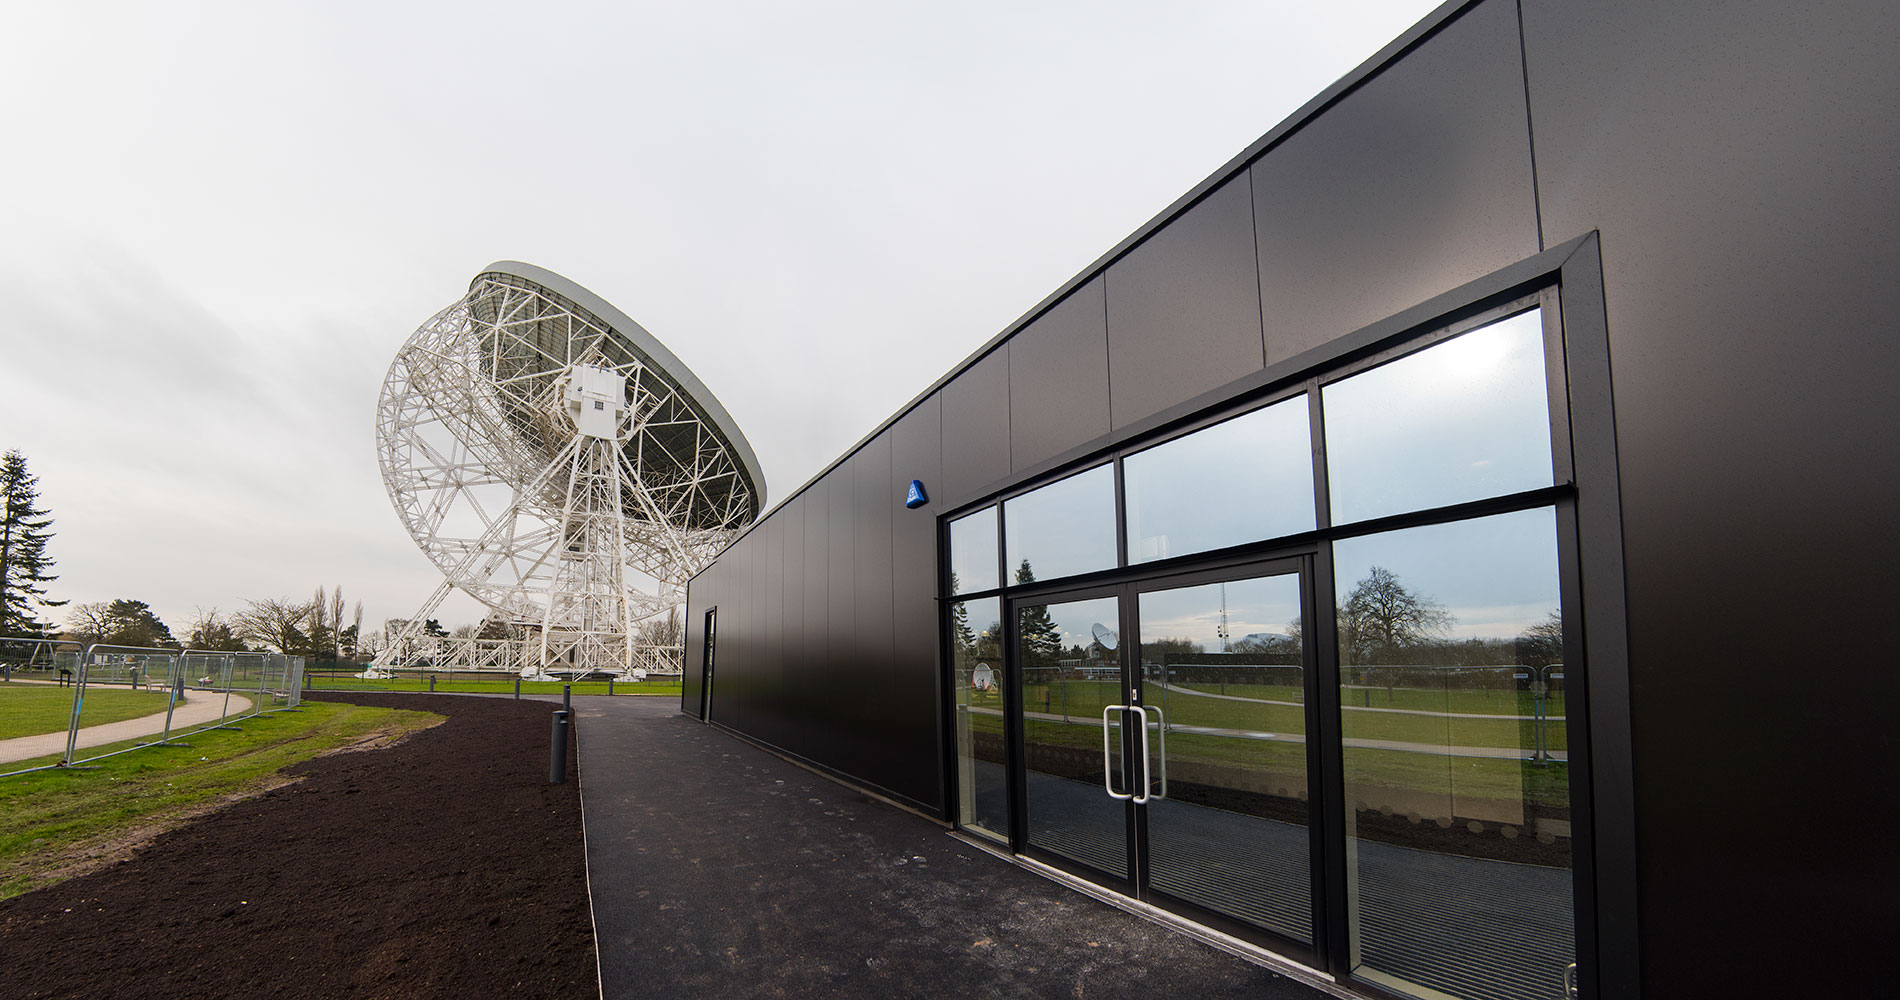 Star Pavilion at Jodrell Bank, The University of Manchester